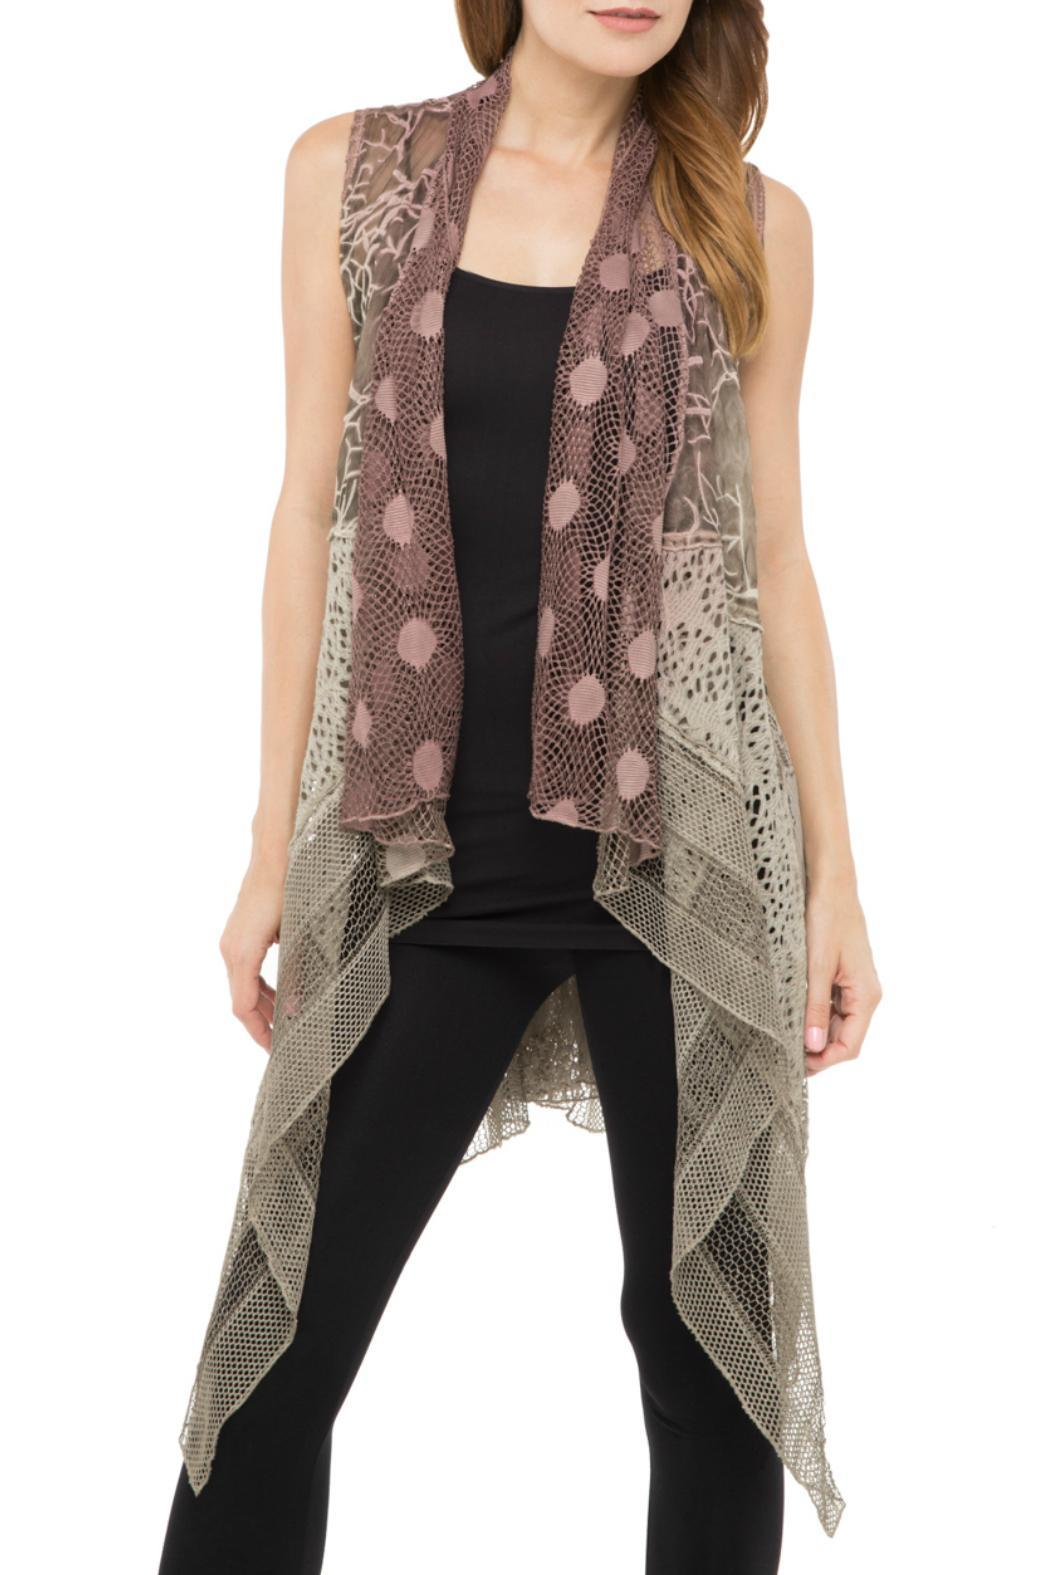 Adore Mauve Lace Vest from Cambria by New Moon — Shoptiques